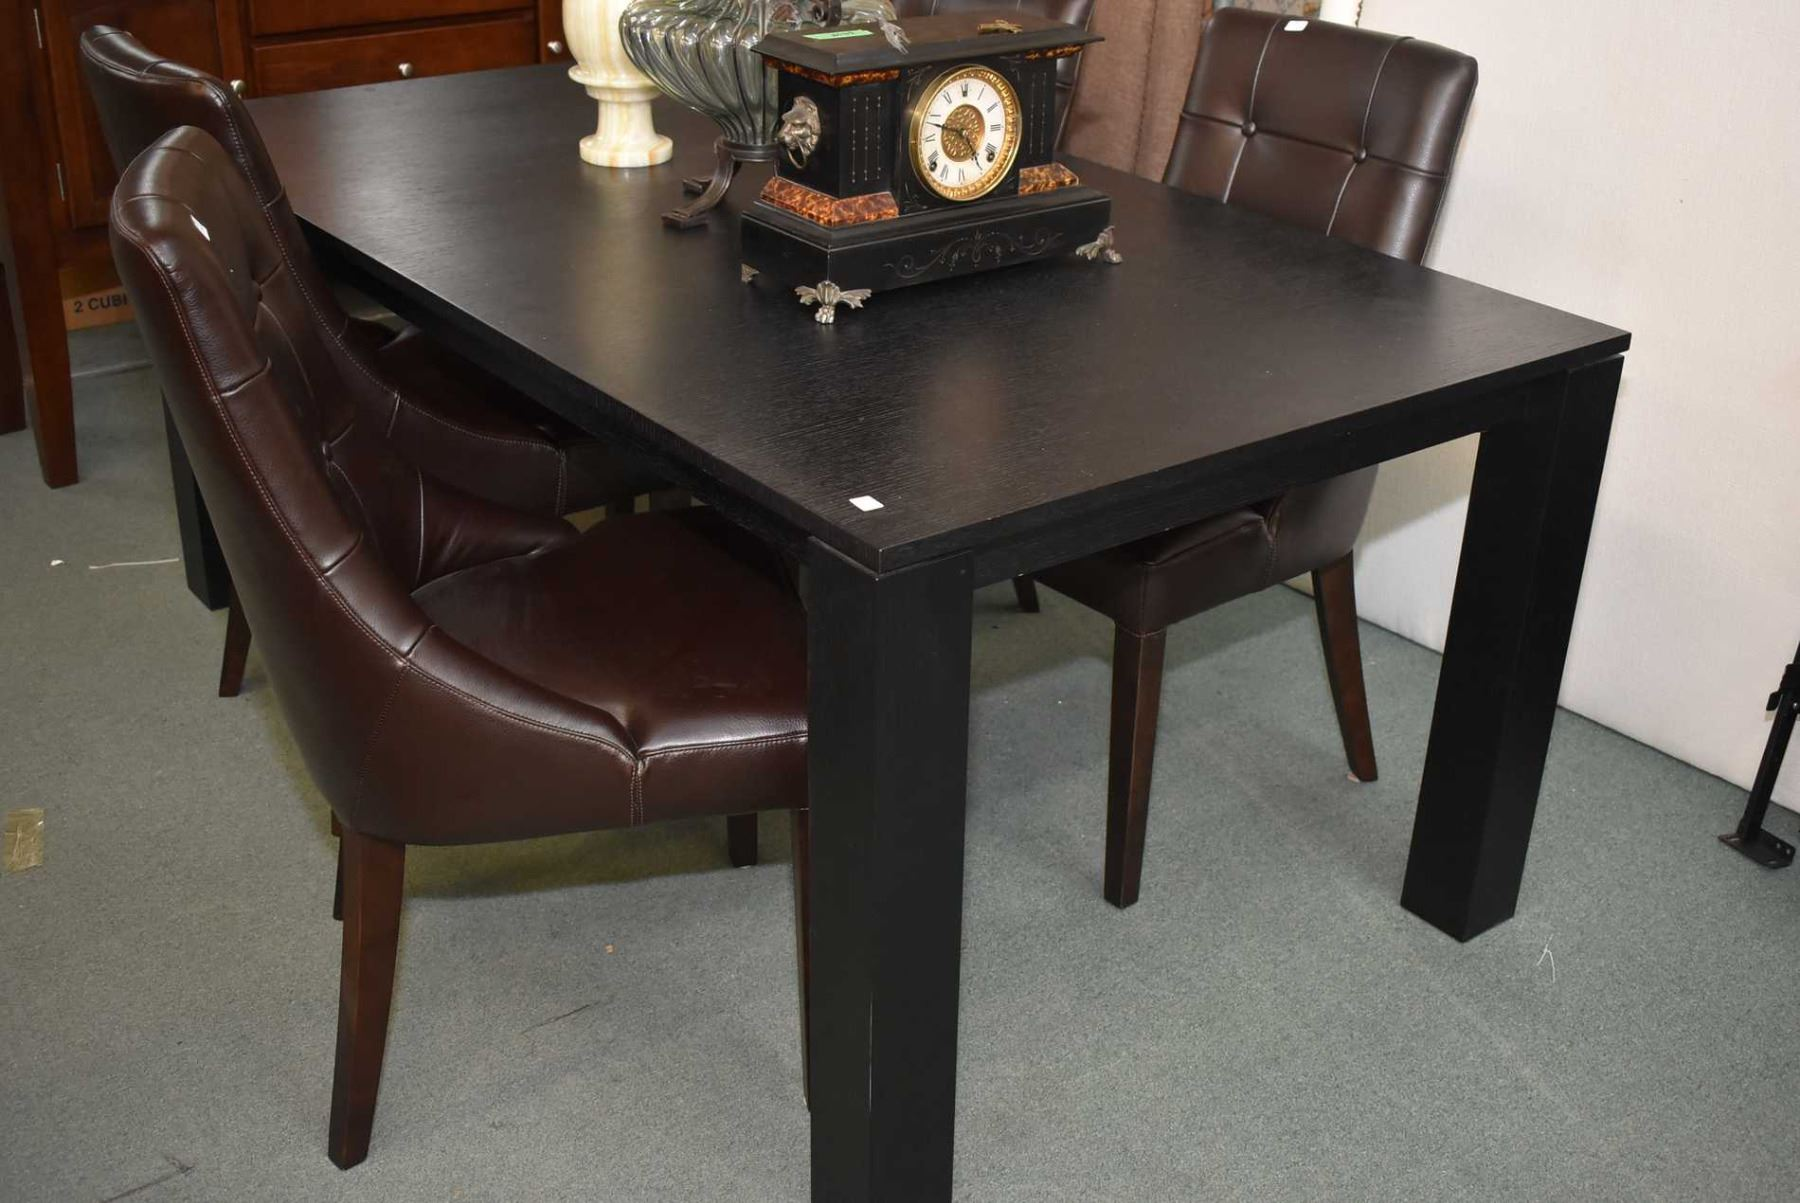 Dining Room Table With Slide Out Leaves 2